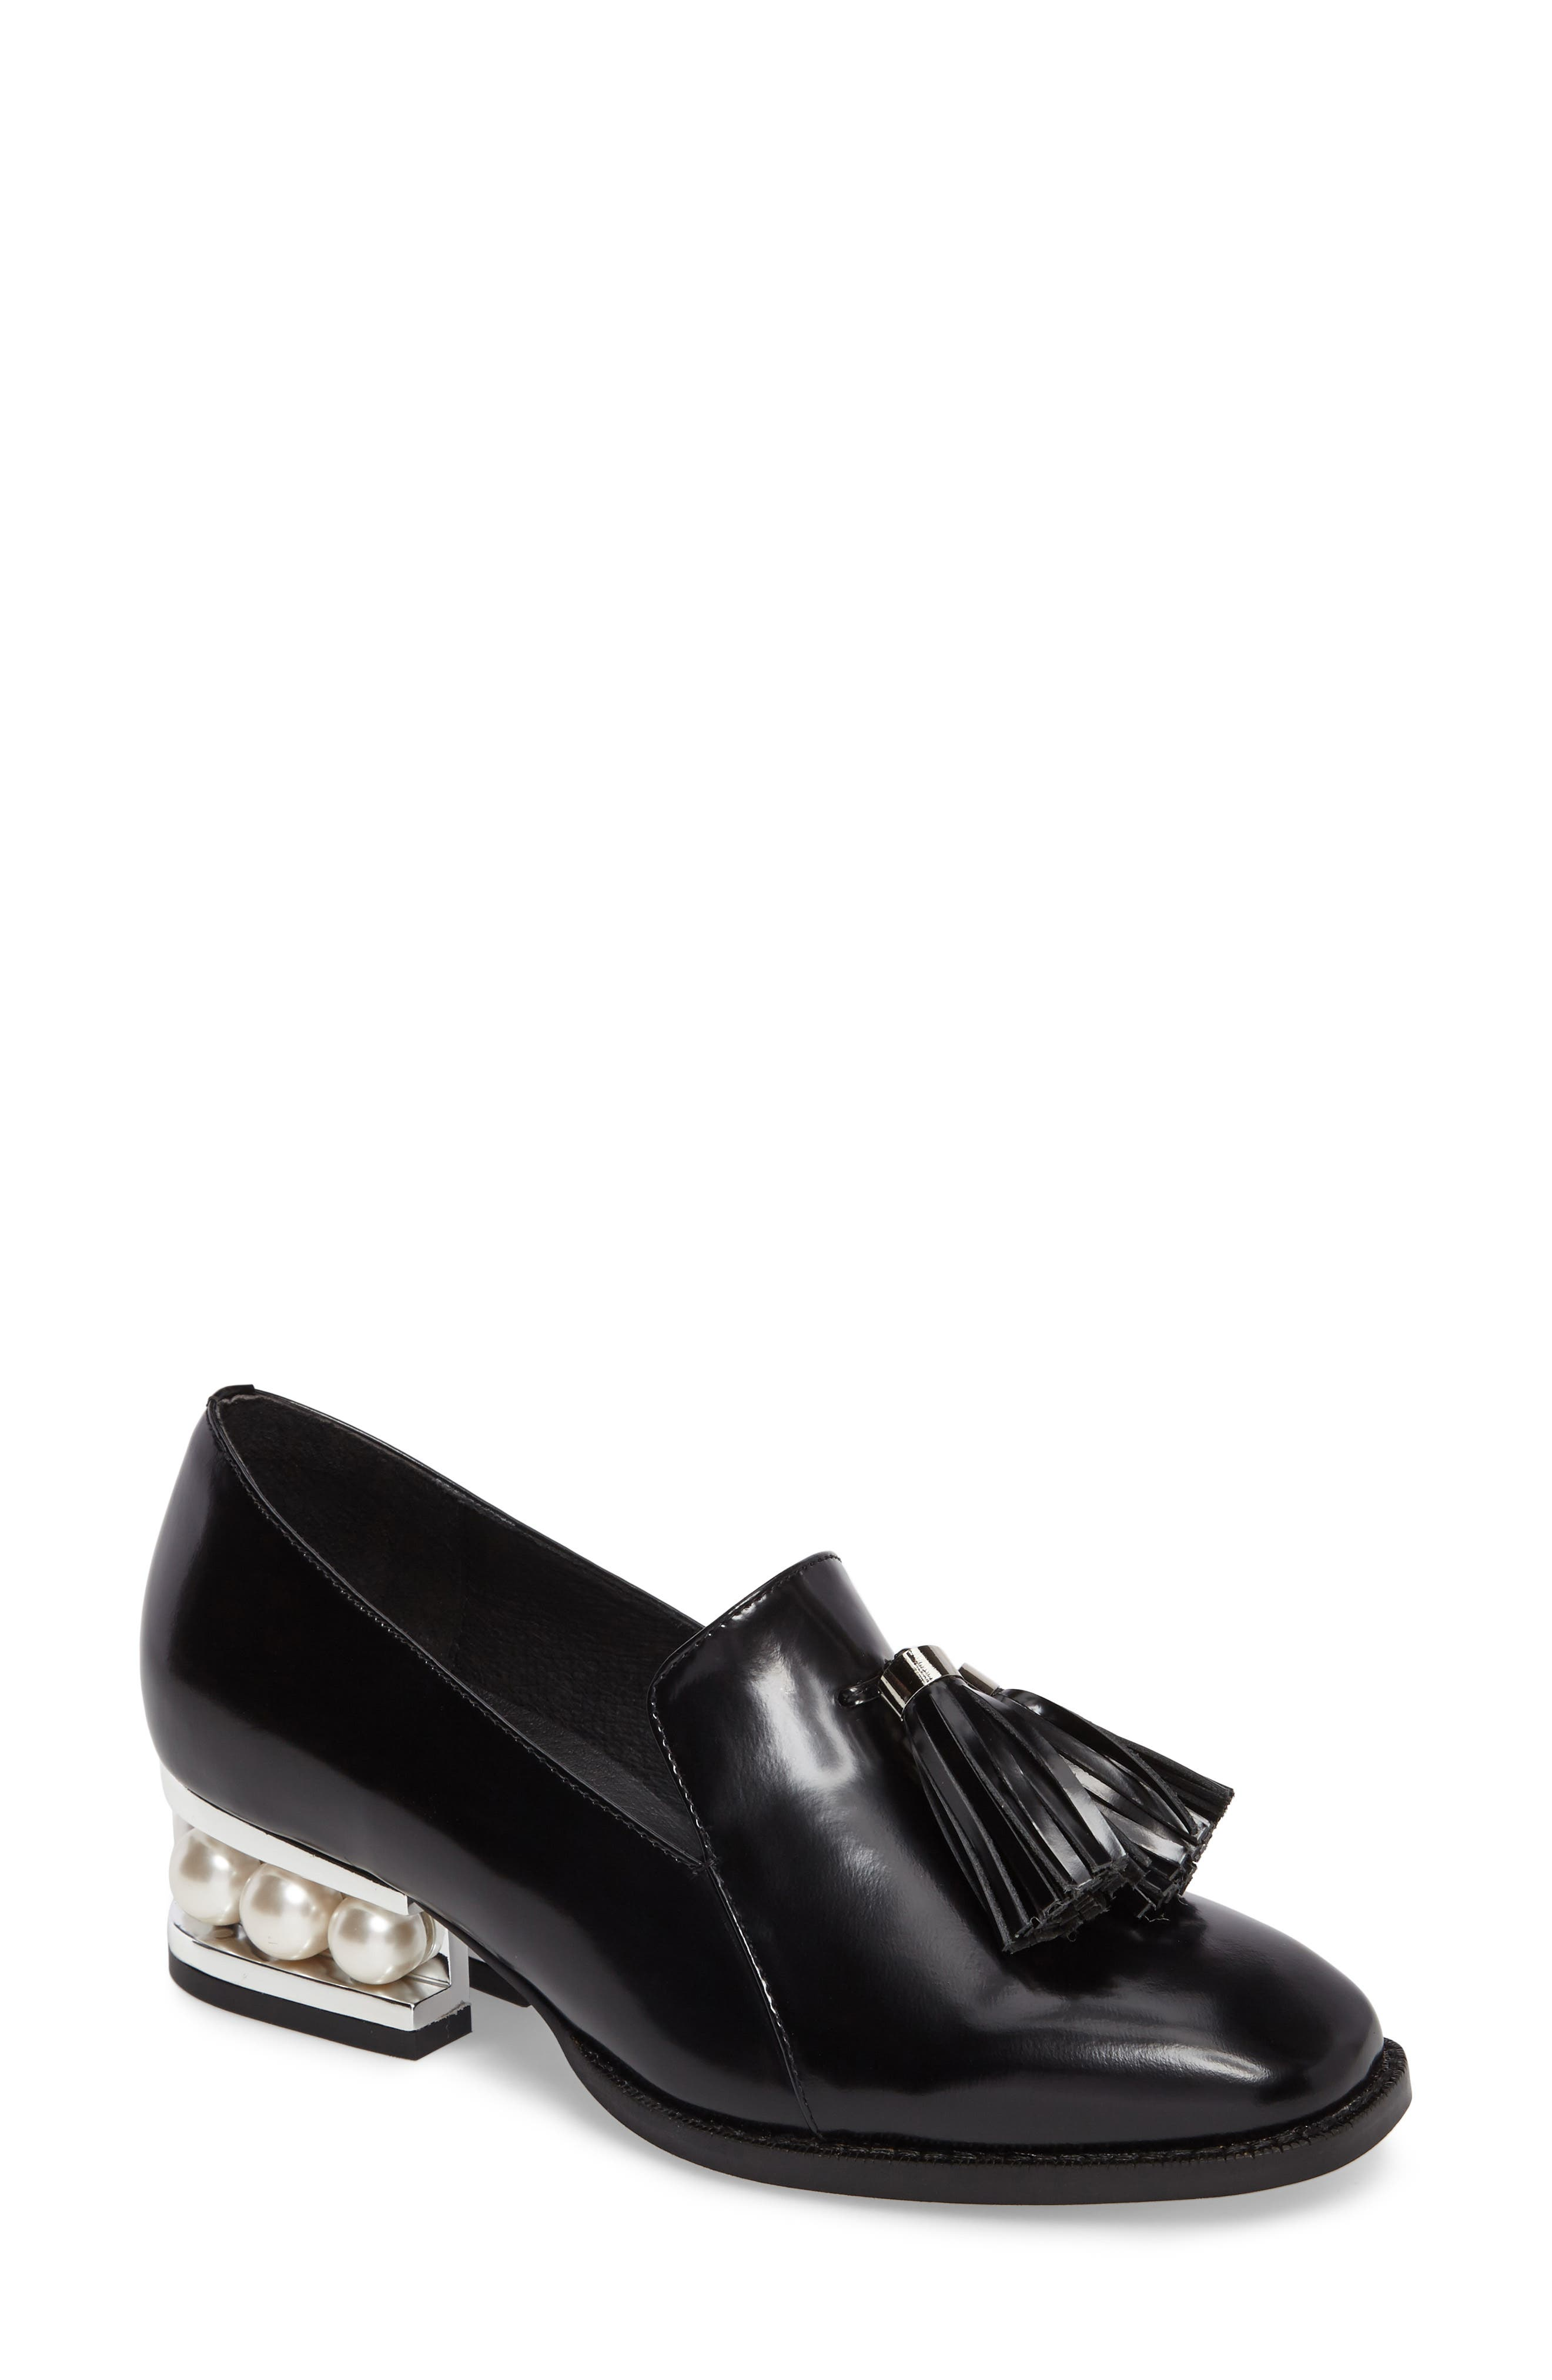 Lawford Pearly Heeled Loafer,                             Main thumbnail 1, color,                             001